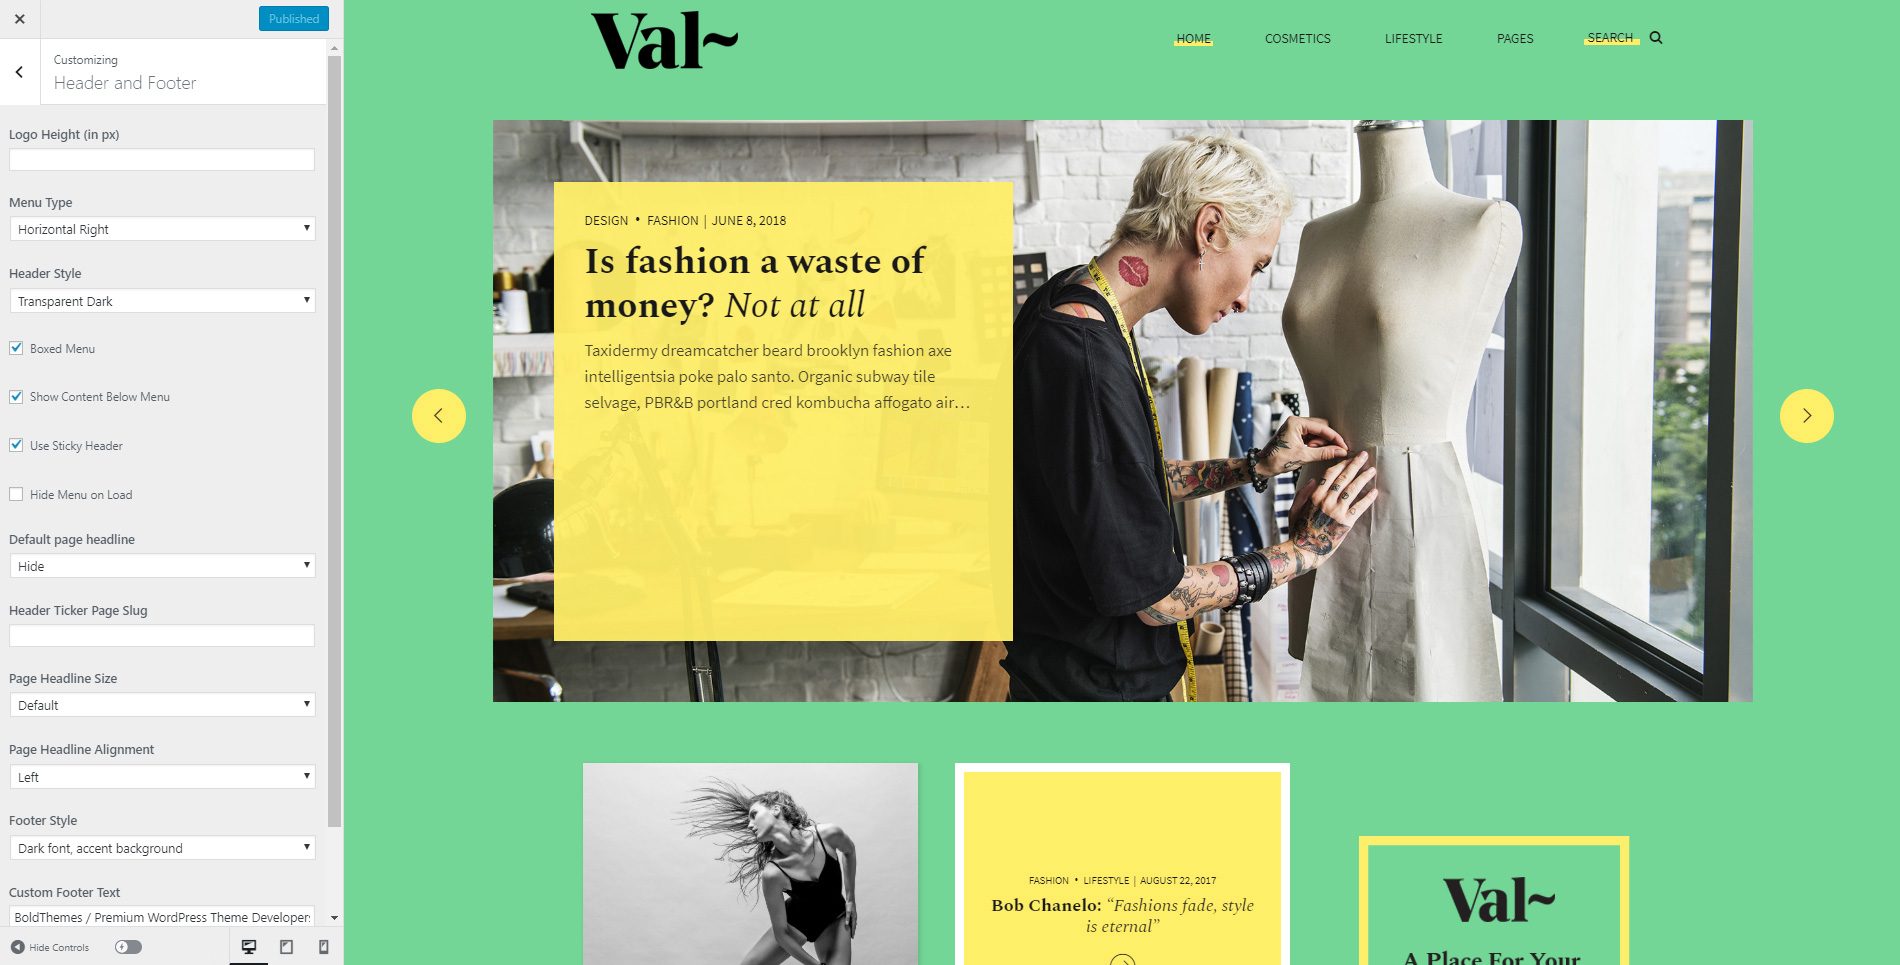 http://documentation.bold-themes.com/val/wp-content/uploads/sites/36/2018/12/val-customize-05.jpg